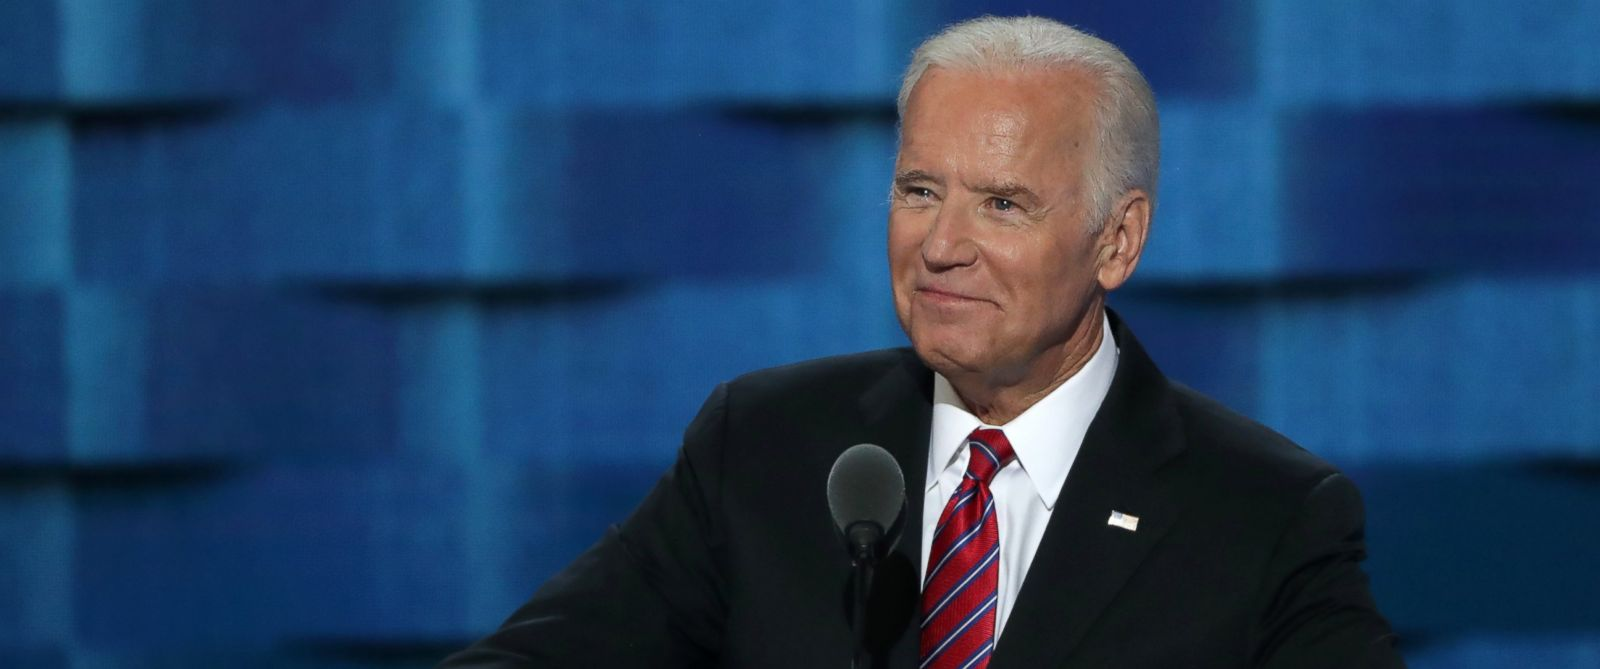 joe biden - photo #16